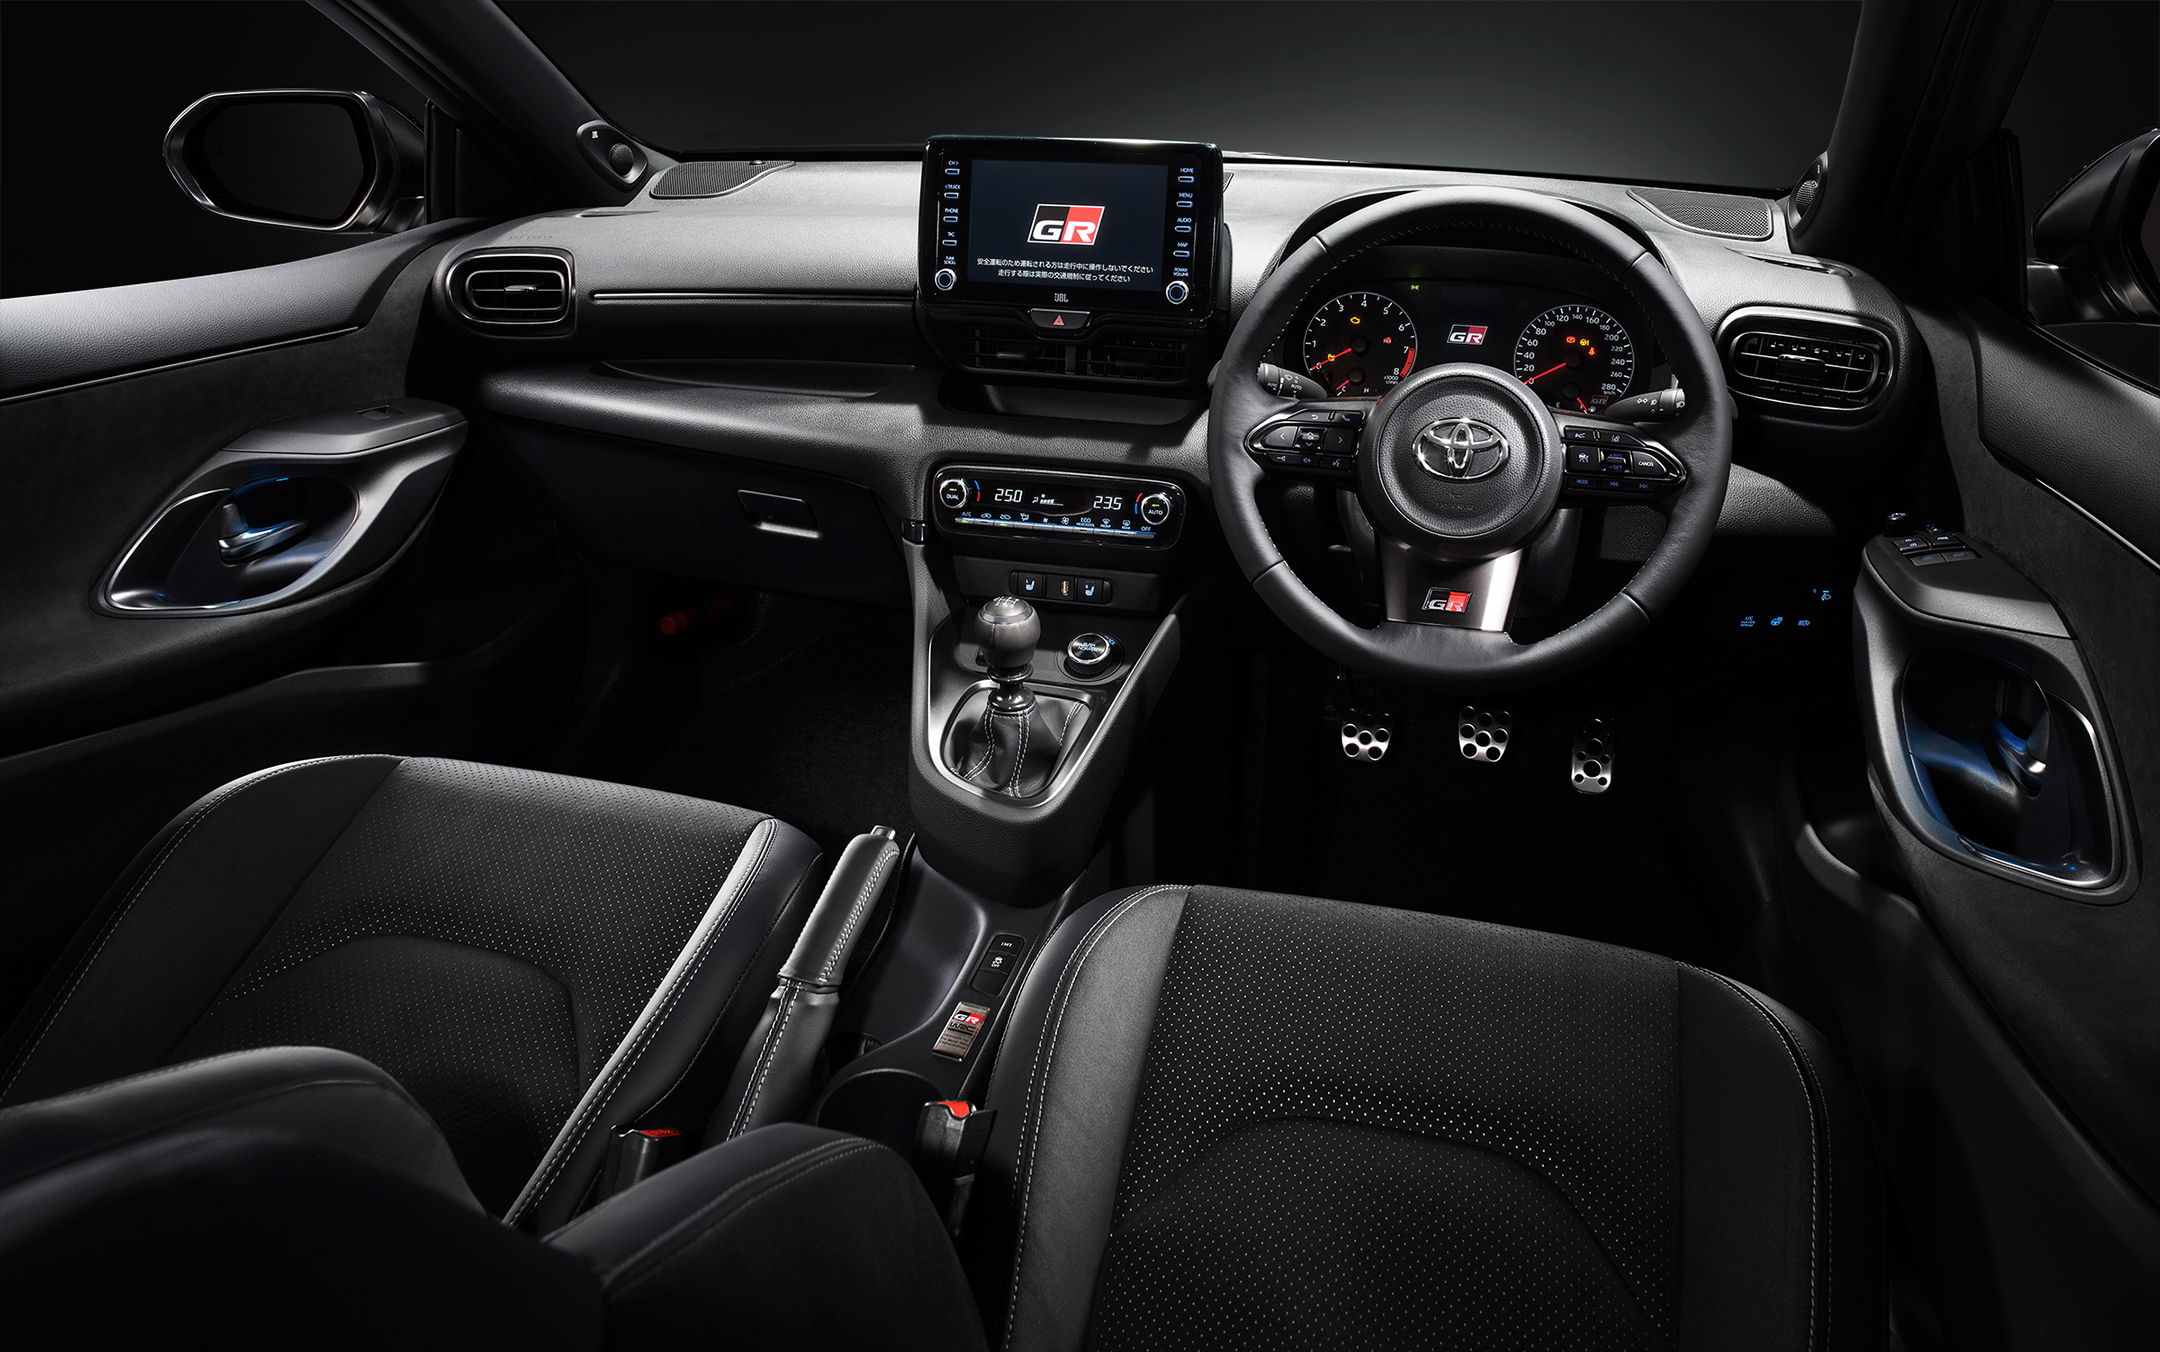 Toyota GR Yaris - 2020 - interior - RHD (Right-Hand-Drive)